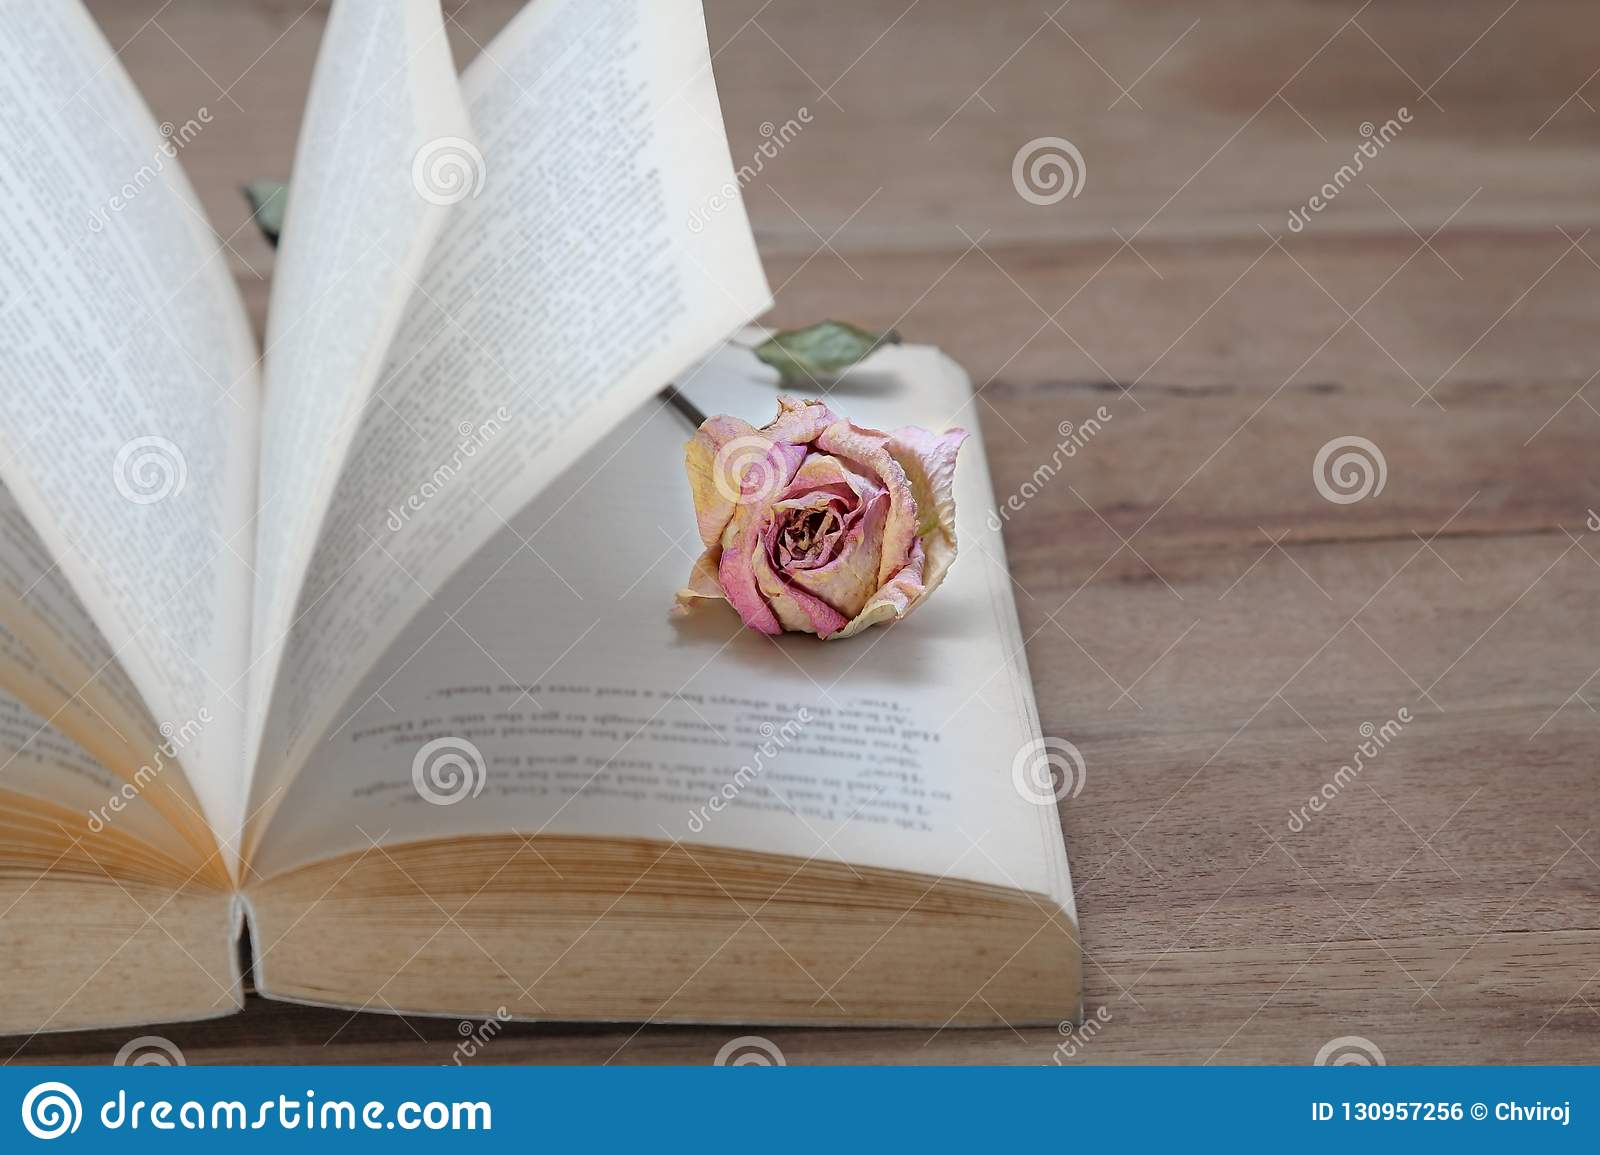 Dried pink rose on the old books open. Vintage tone.